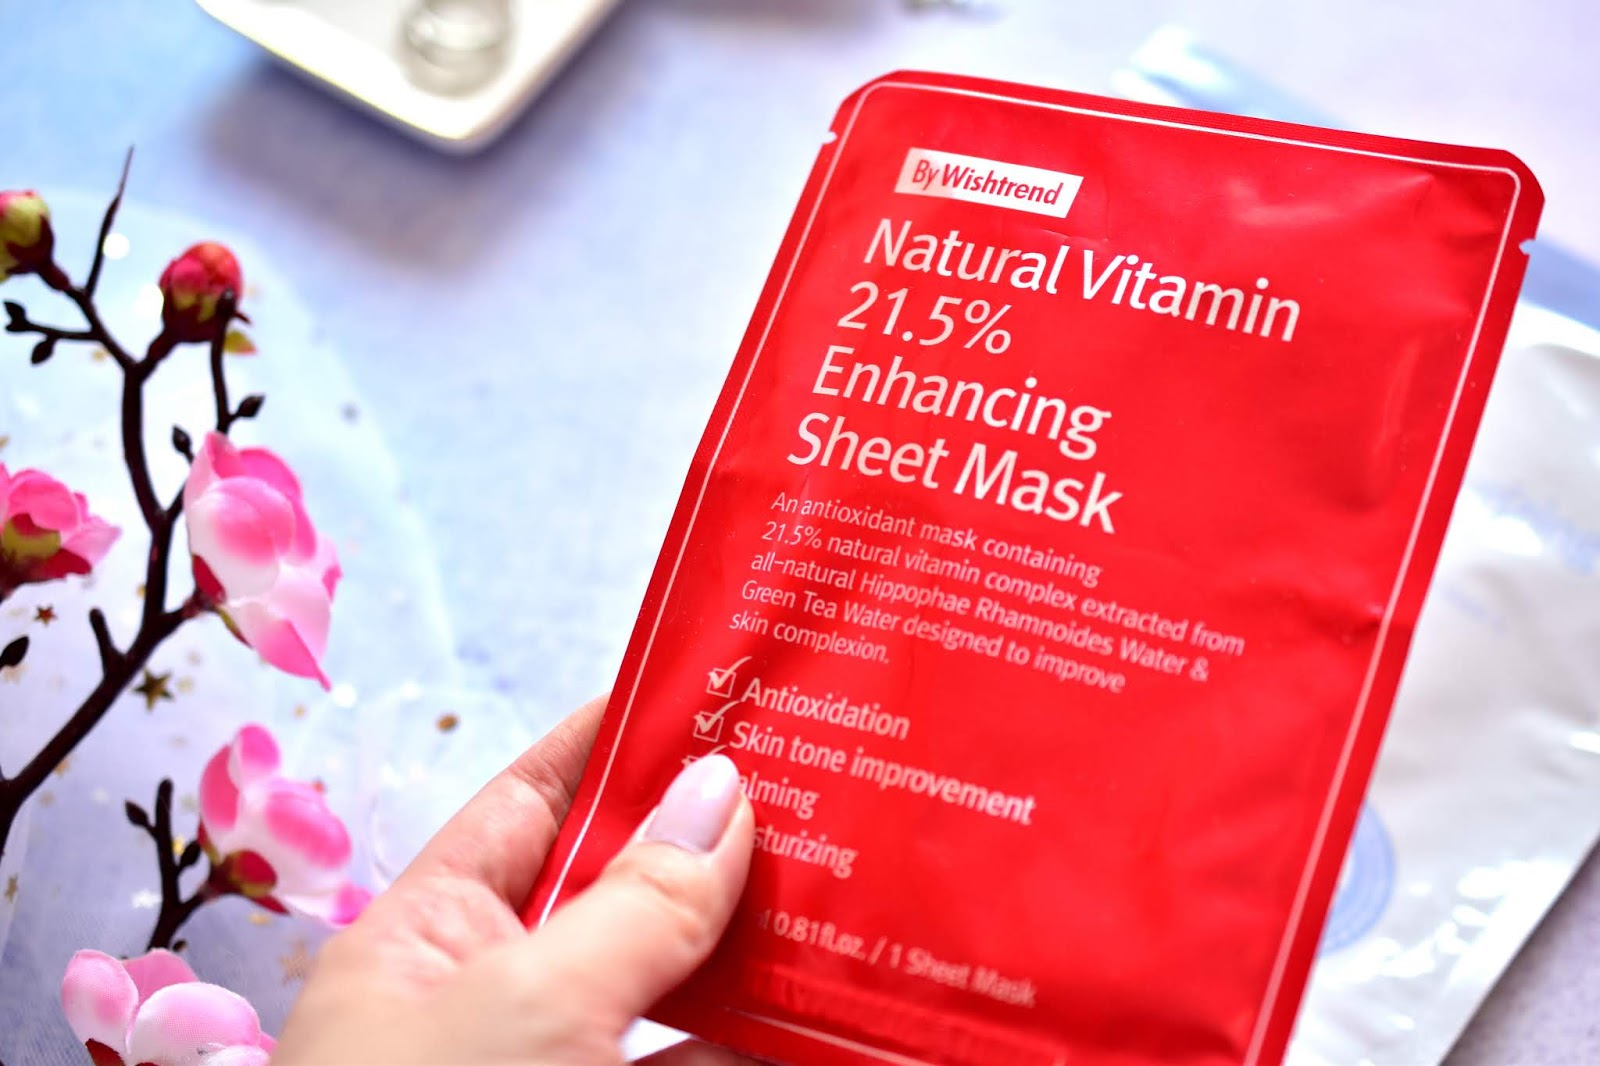 By Wishtrend Natural Vitamin 21,5 % Enhancing Sheet Mask